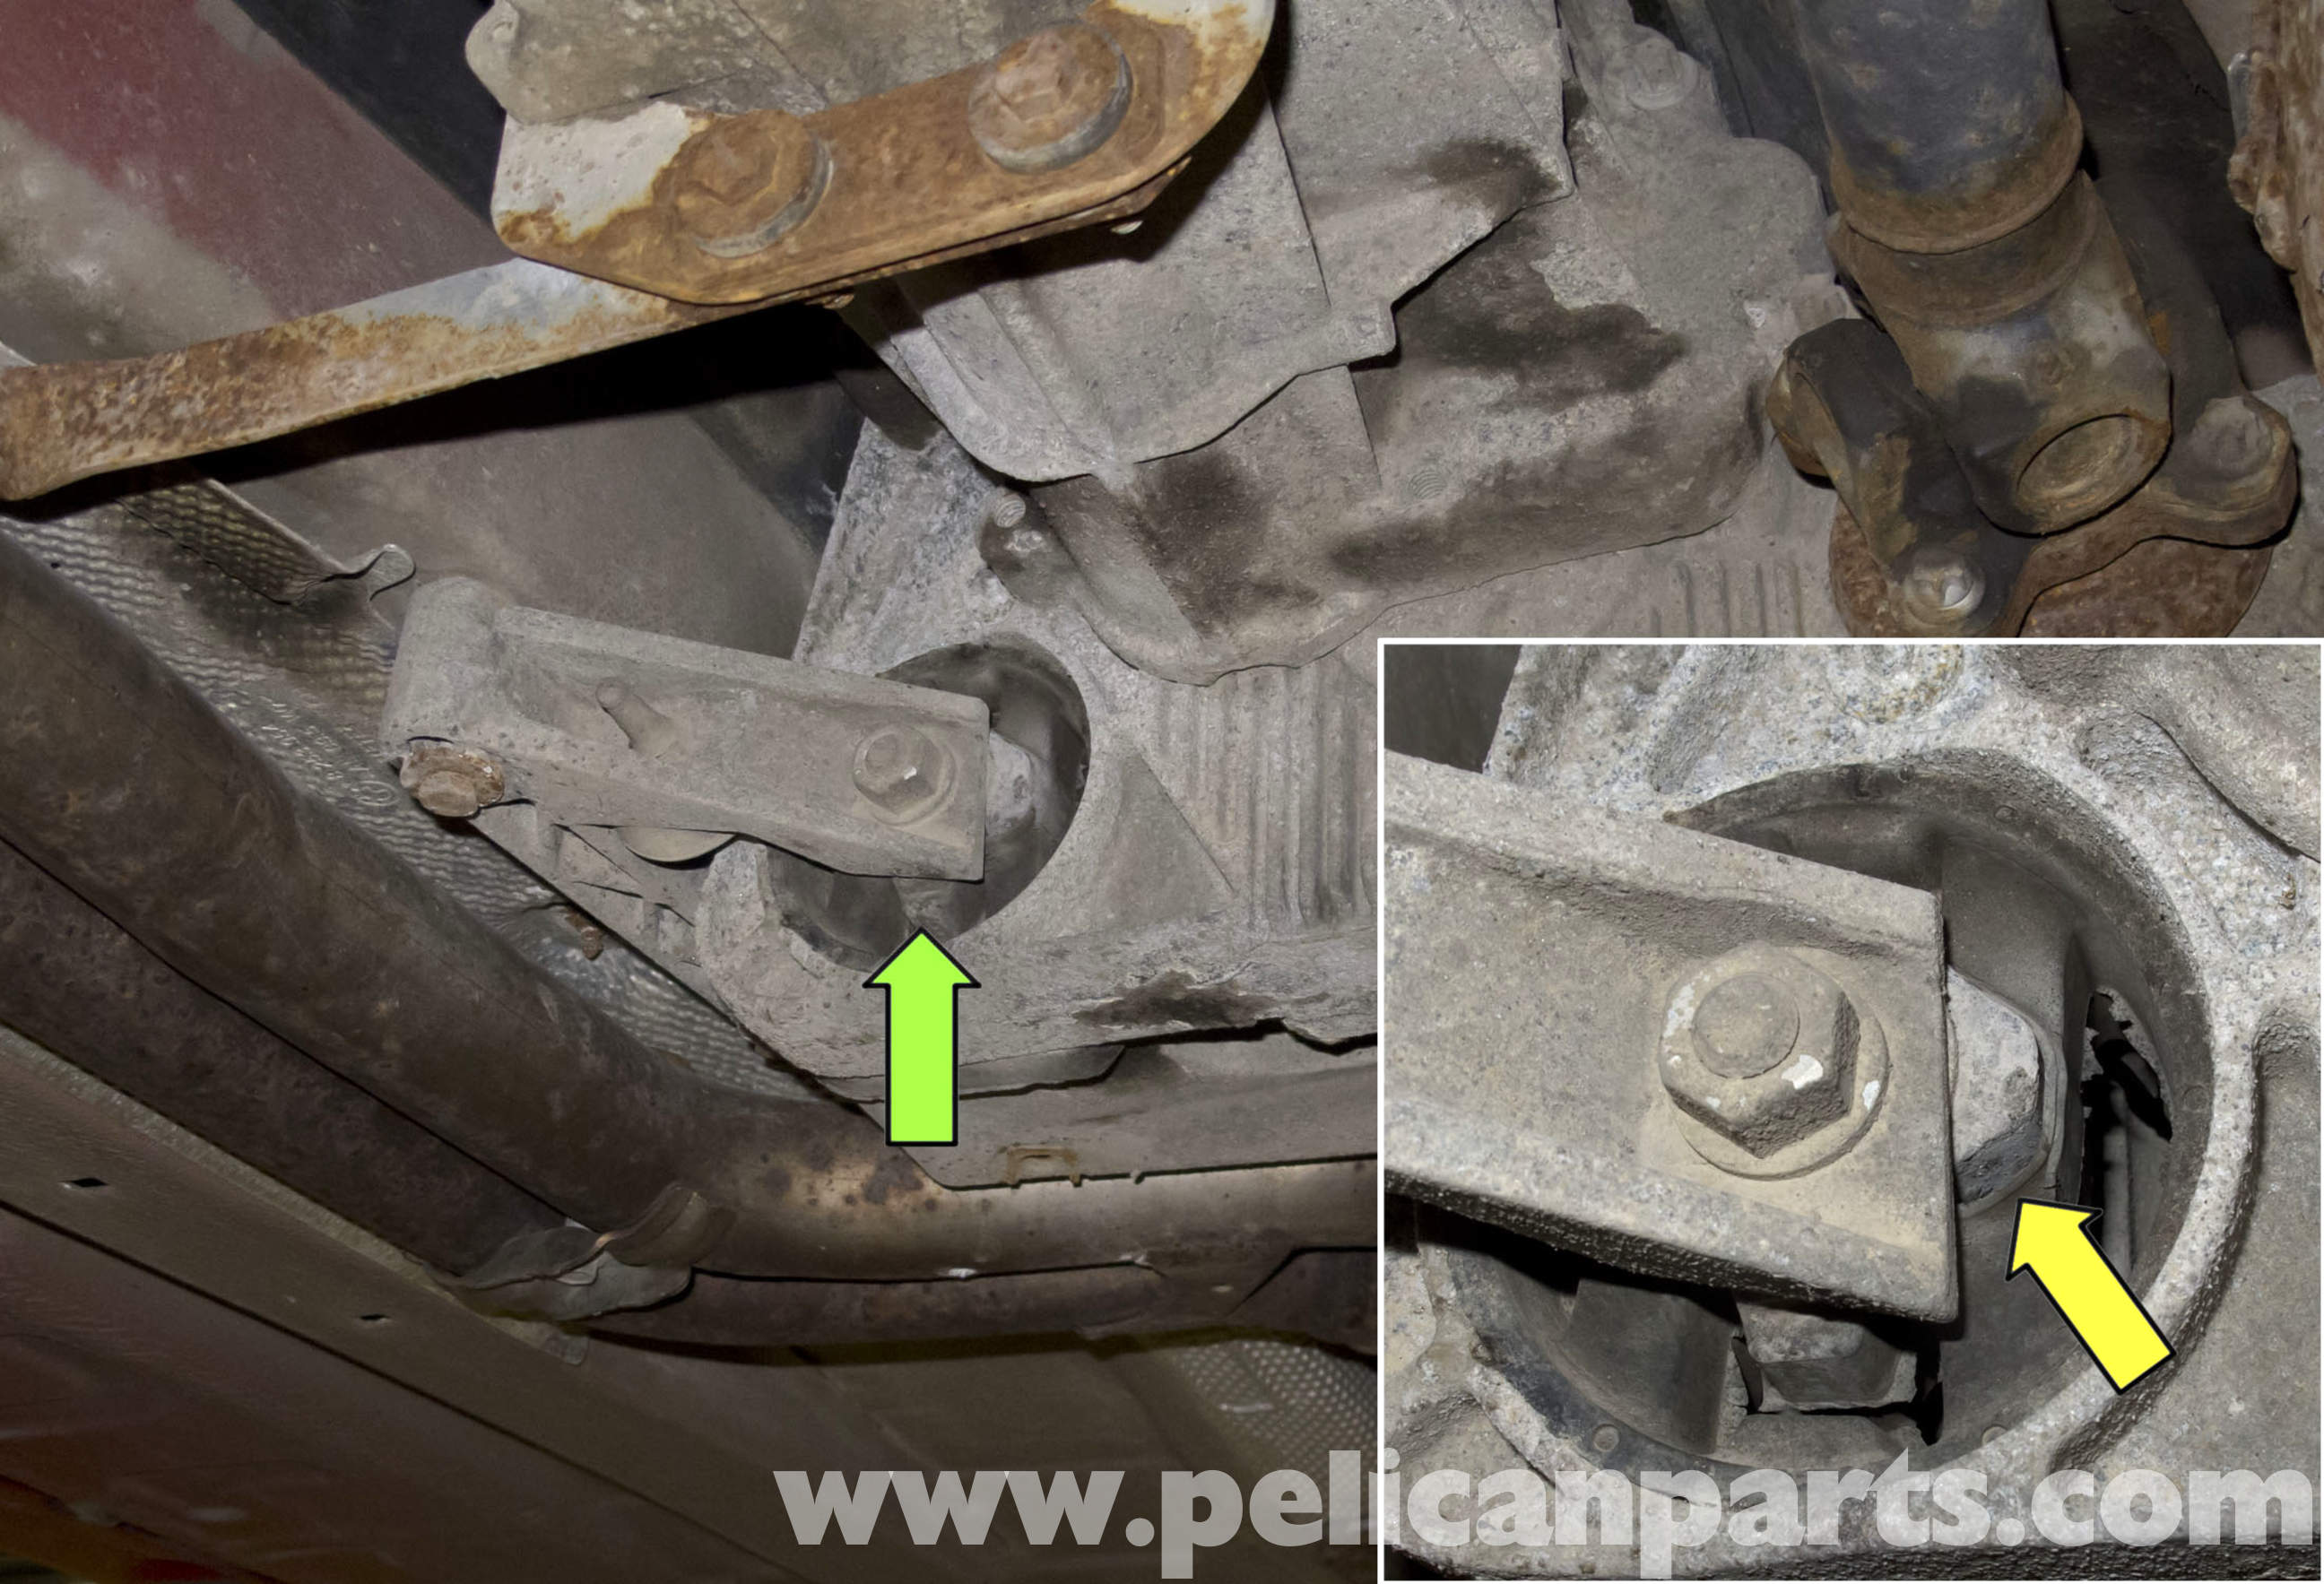 Bmw e46 awd transfer case mount replacement bmw 325i 2001 2005 large image extra large image publicscrutiny Gallery